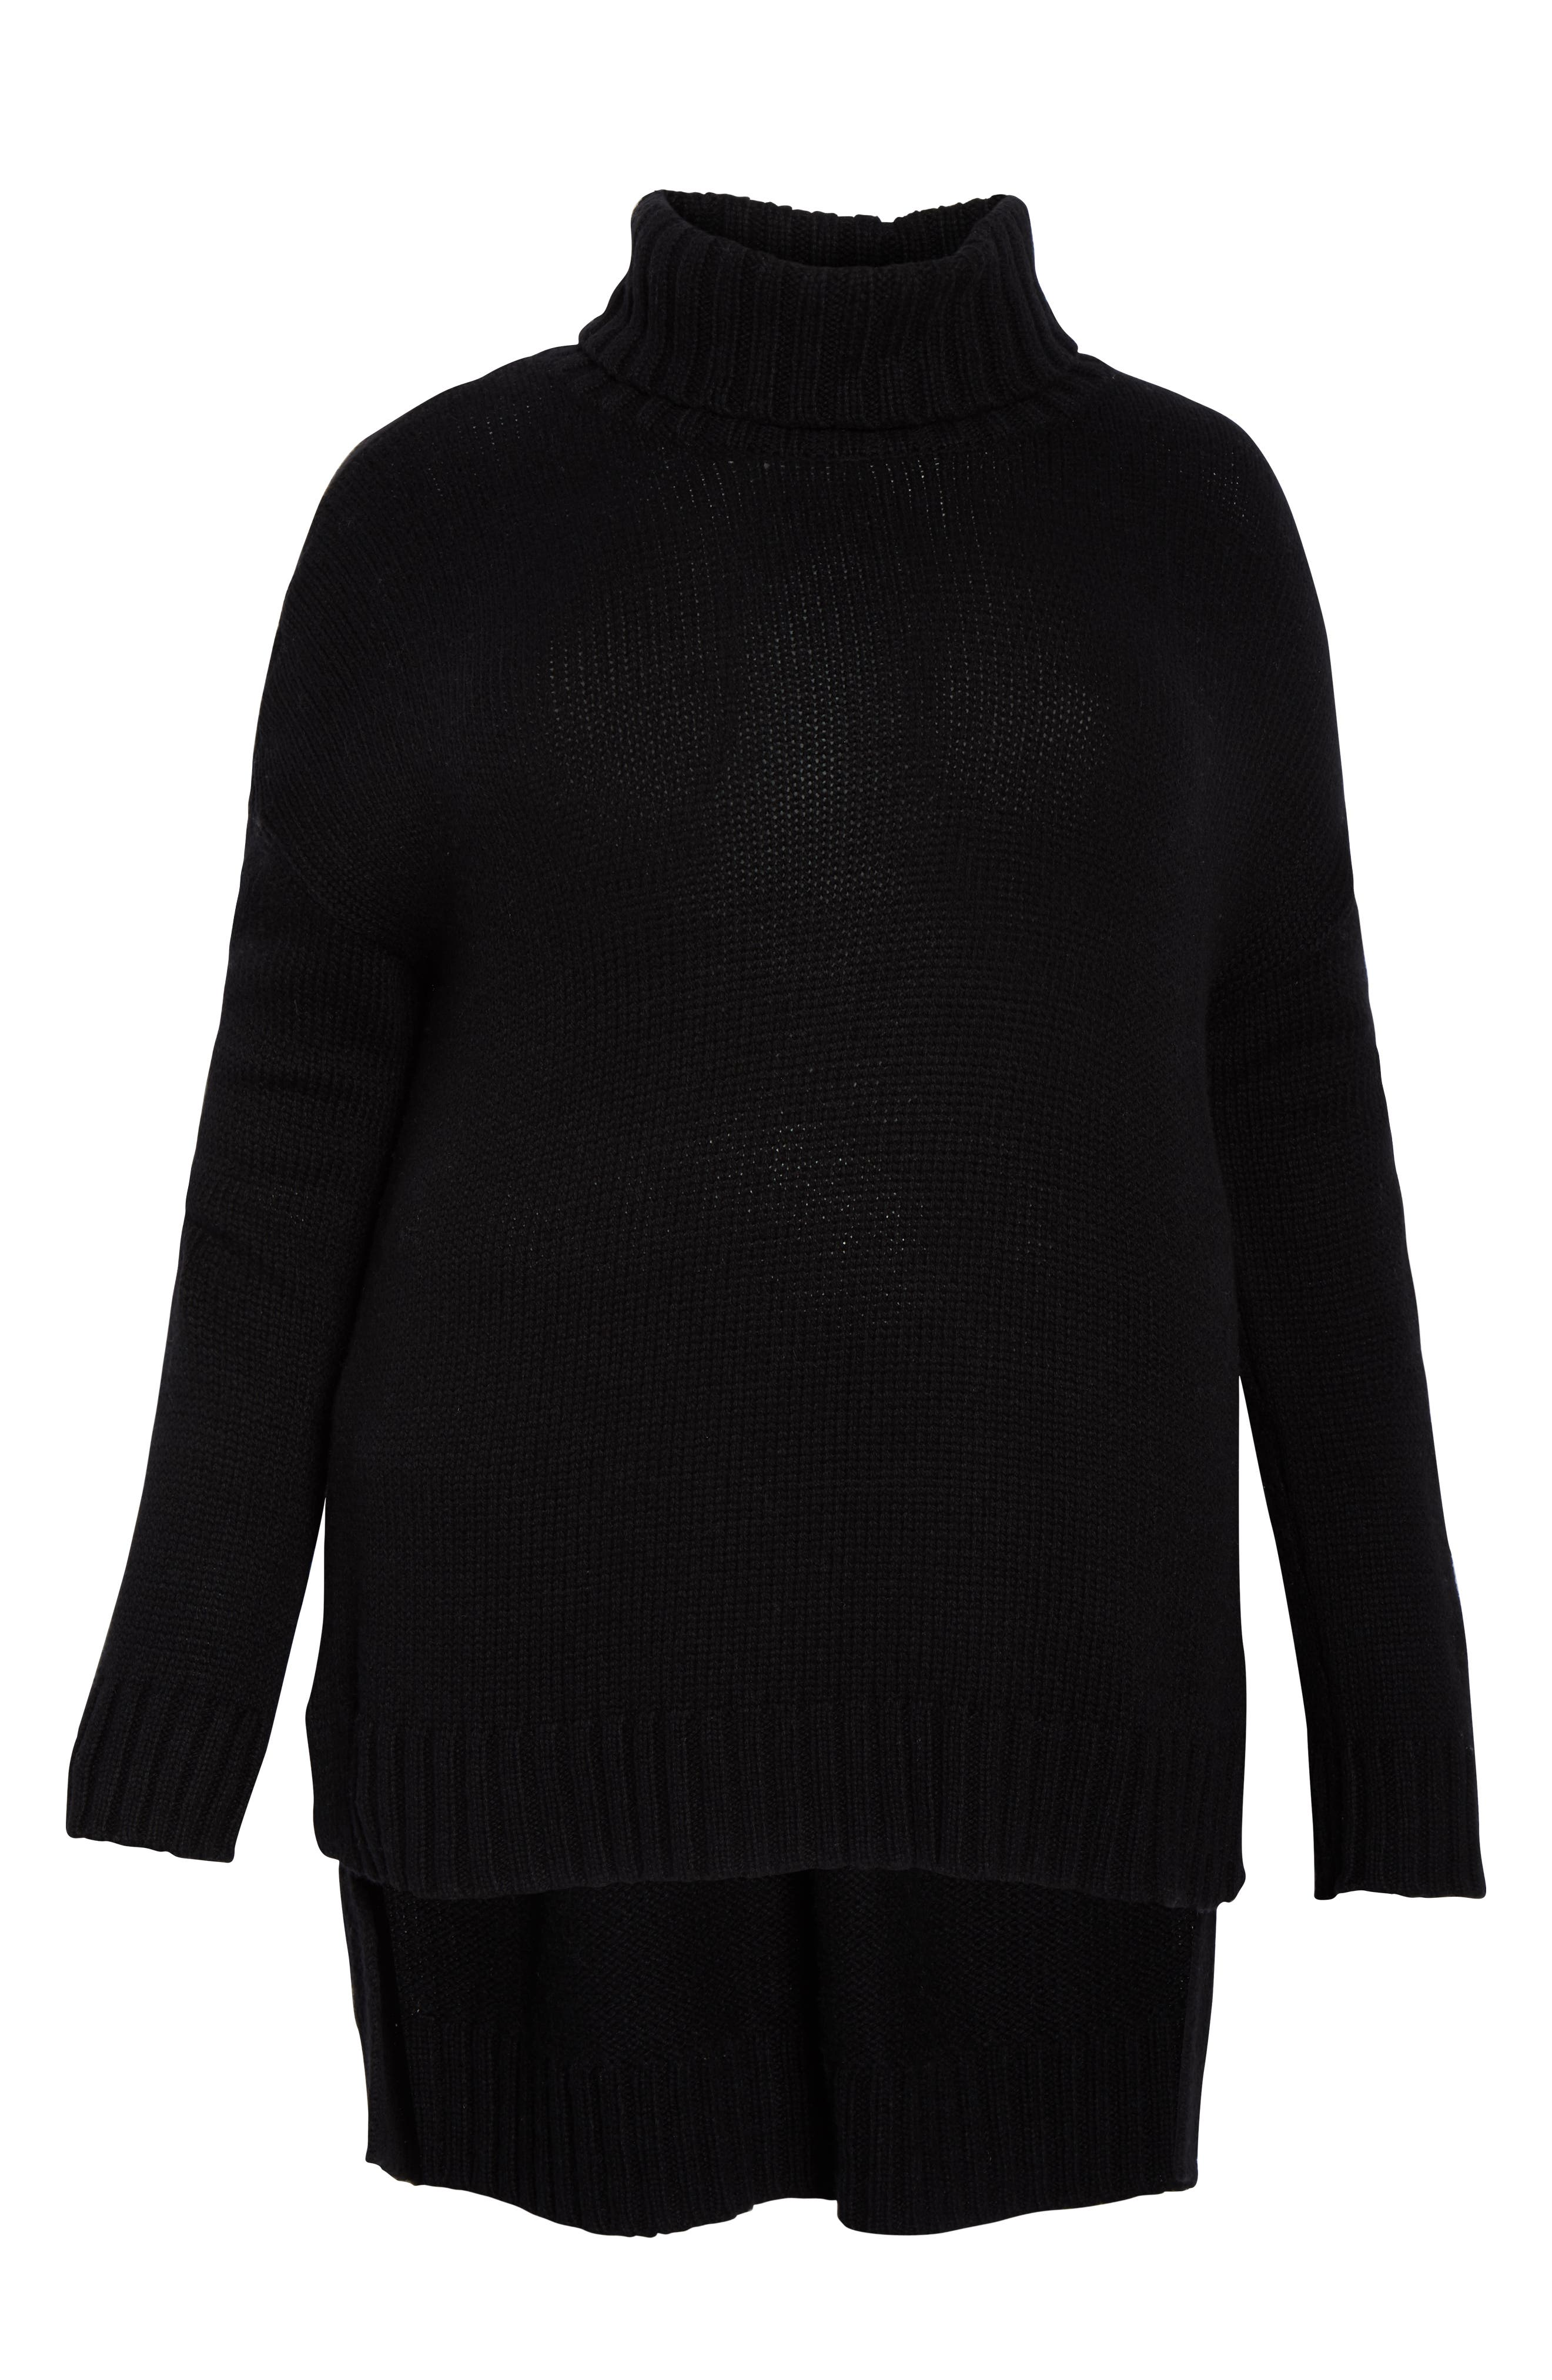 High/Low Turtleneck Sweater,                             Alternate thumbnail 6, color,                             BLACK